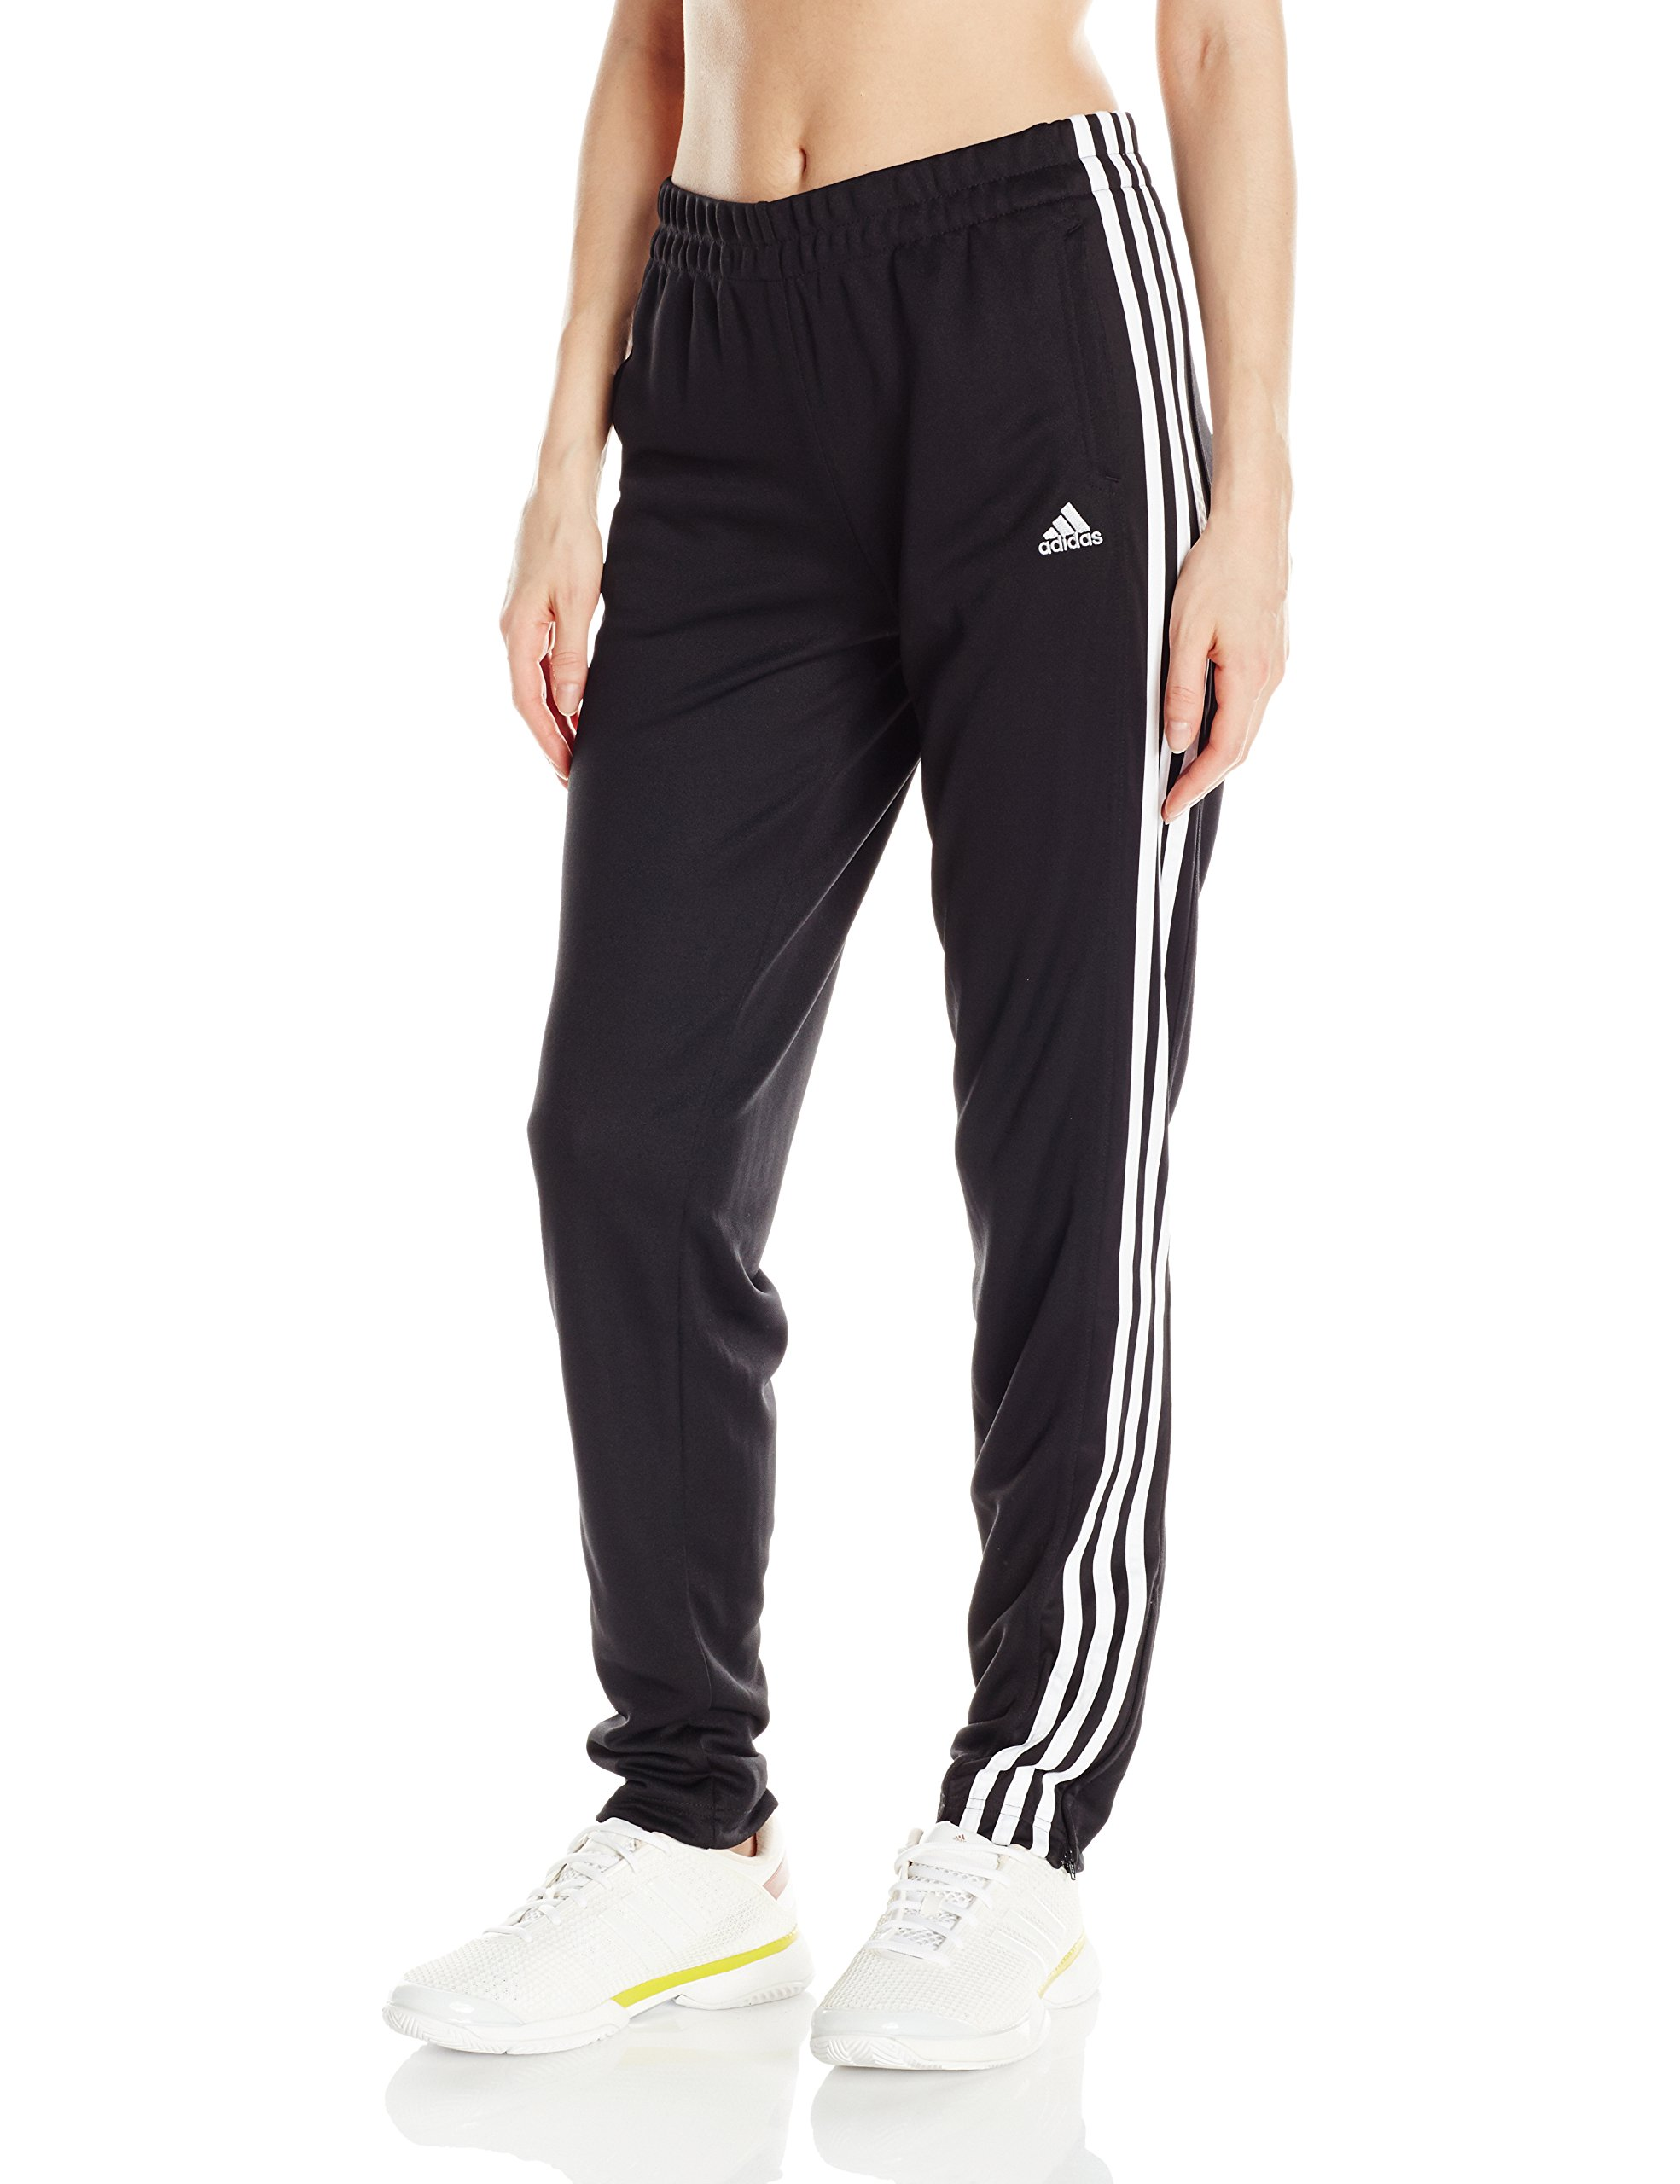 adidas Women's T10 Pants, Black/White, X-Small